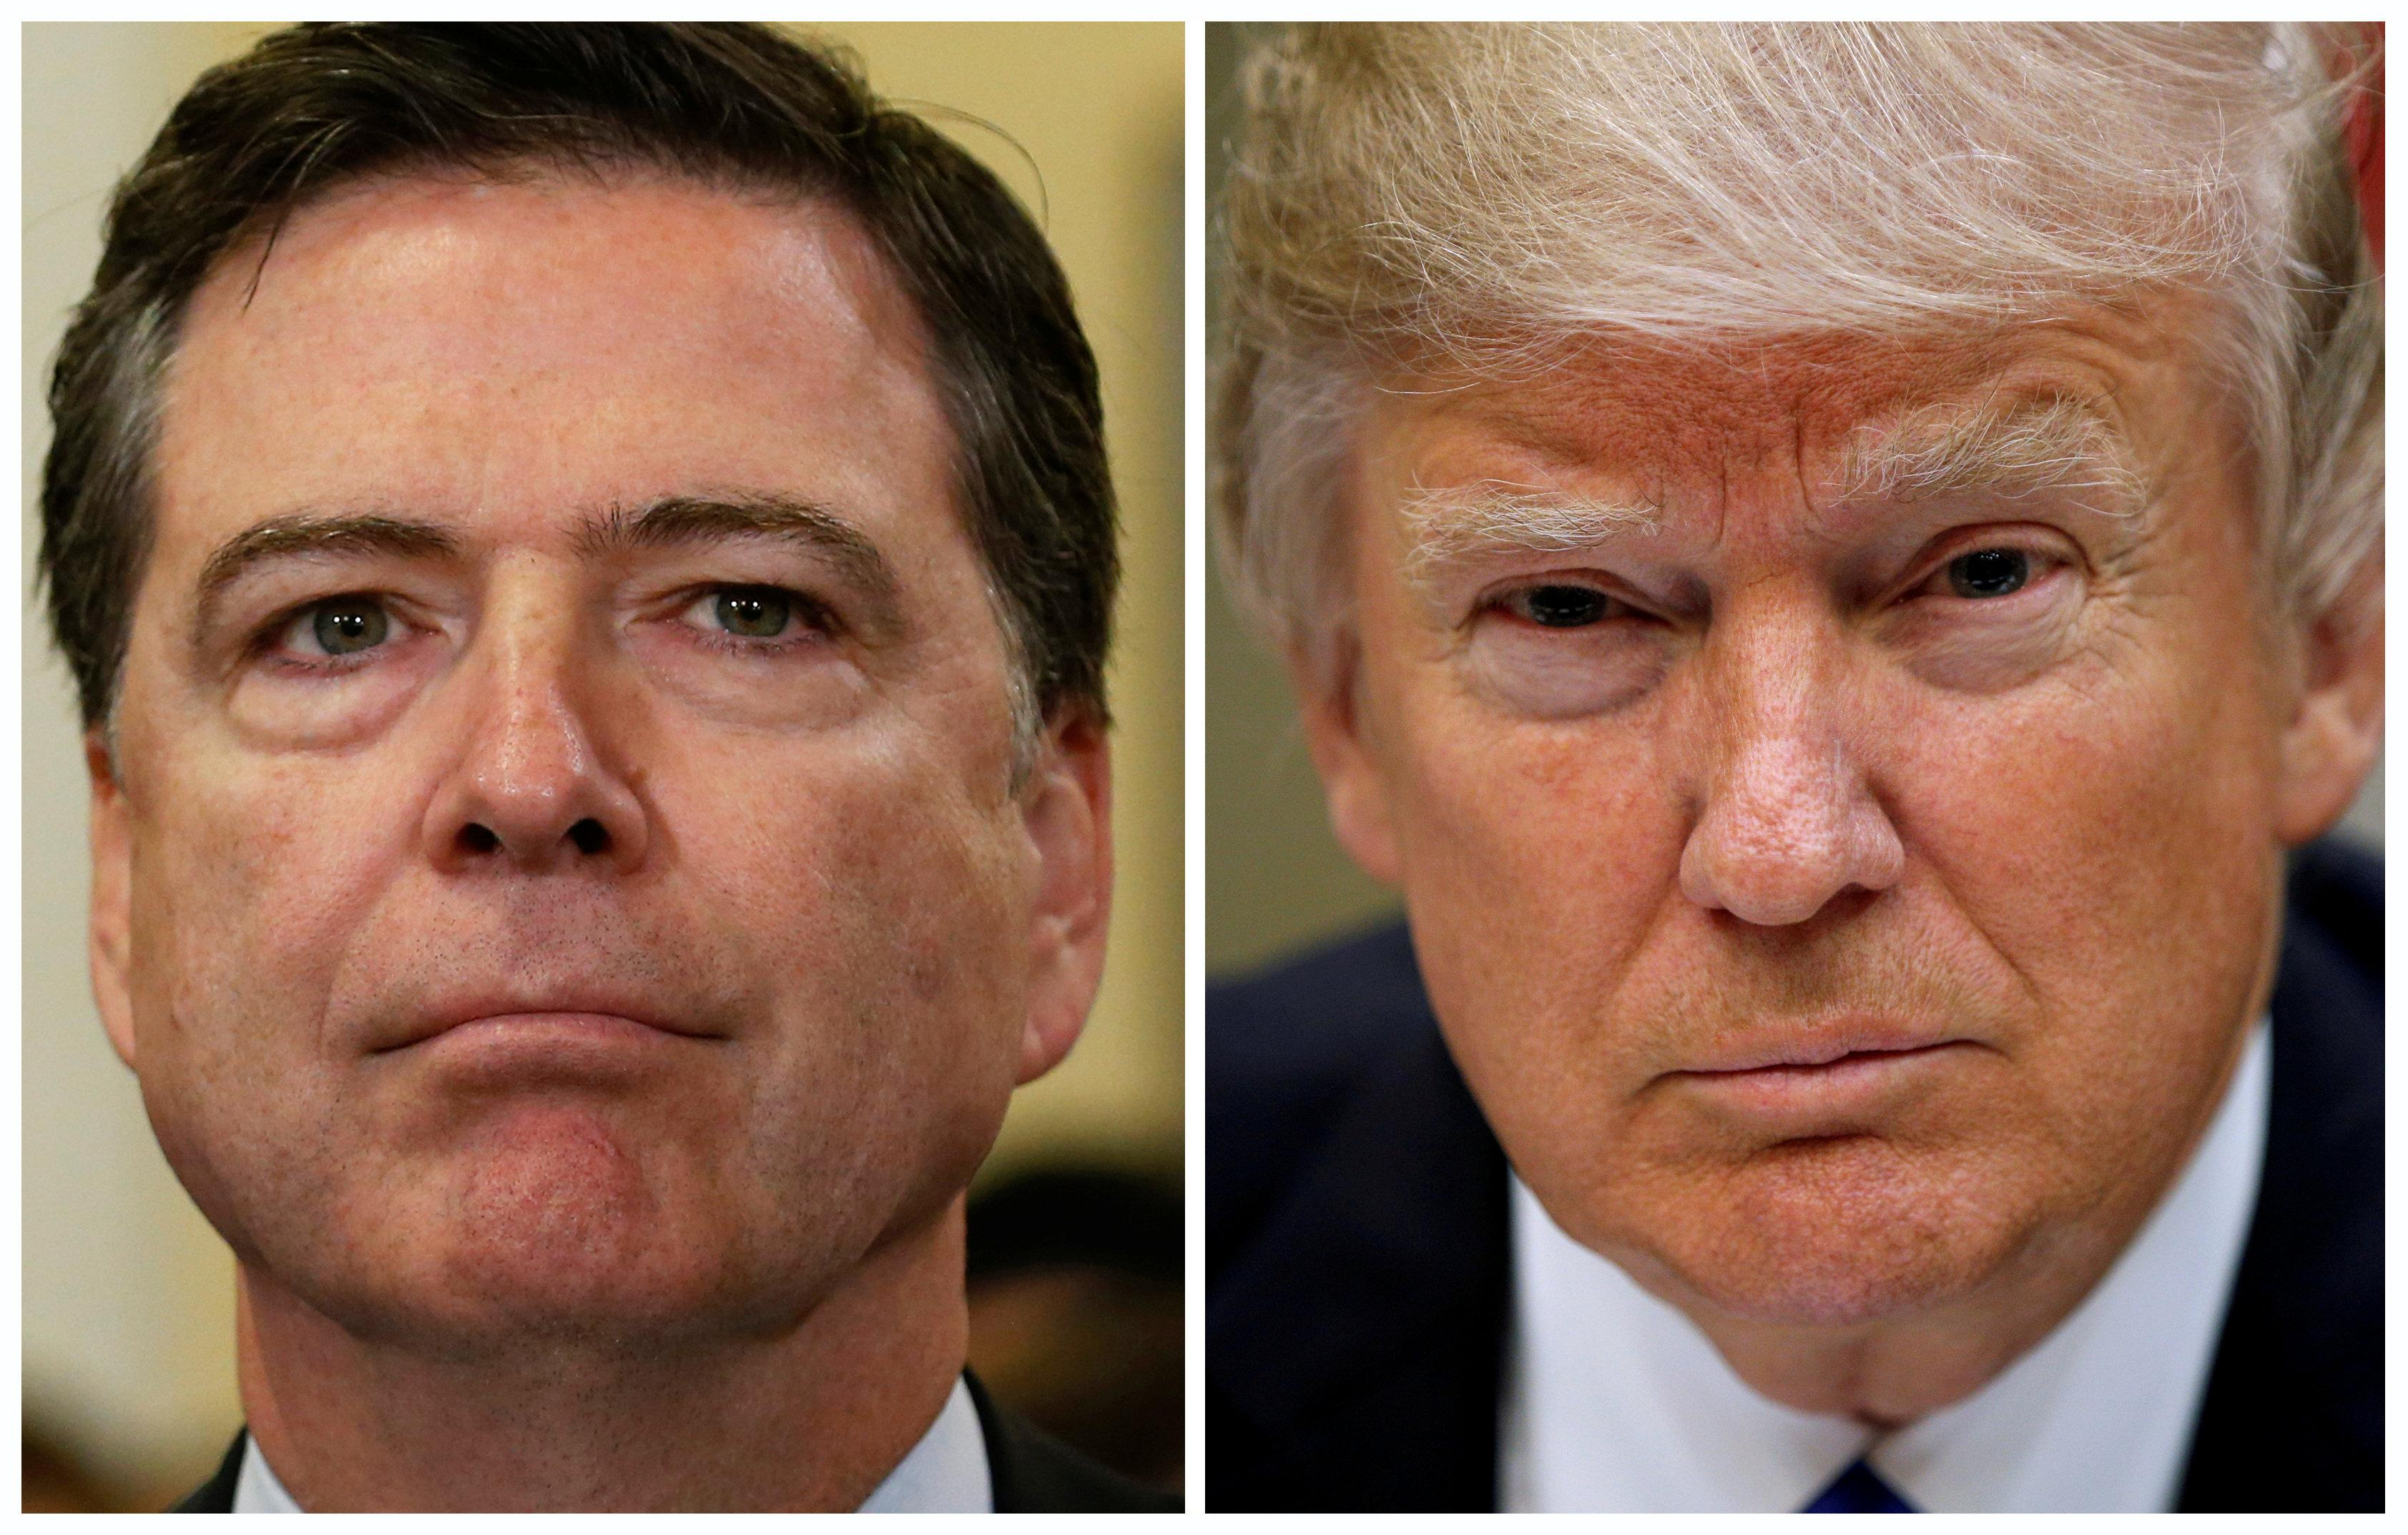 A combination photo shows FBI Director James Comey (L) and U.S. President Donald Trump. REUTERS/Jonathan Ernst,Kevin Lamarque